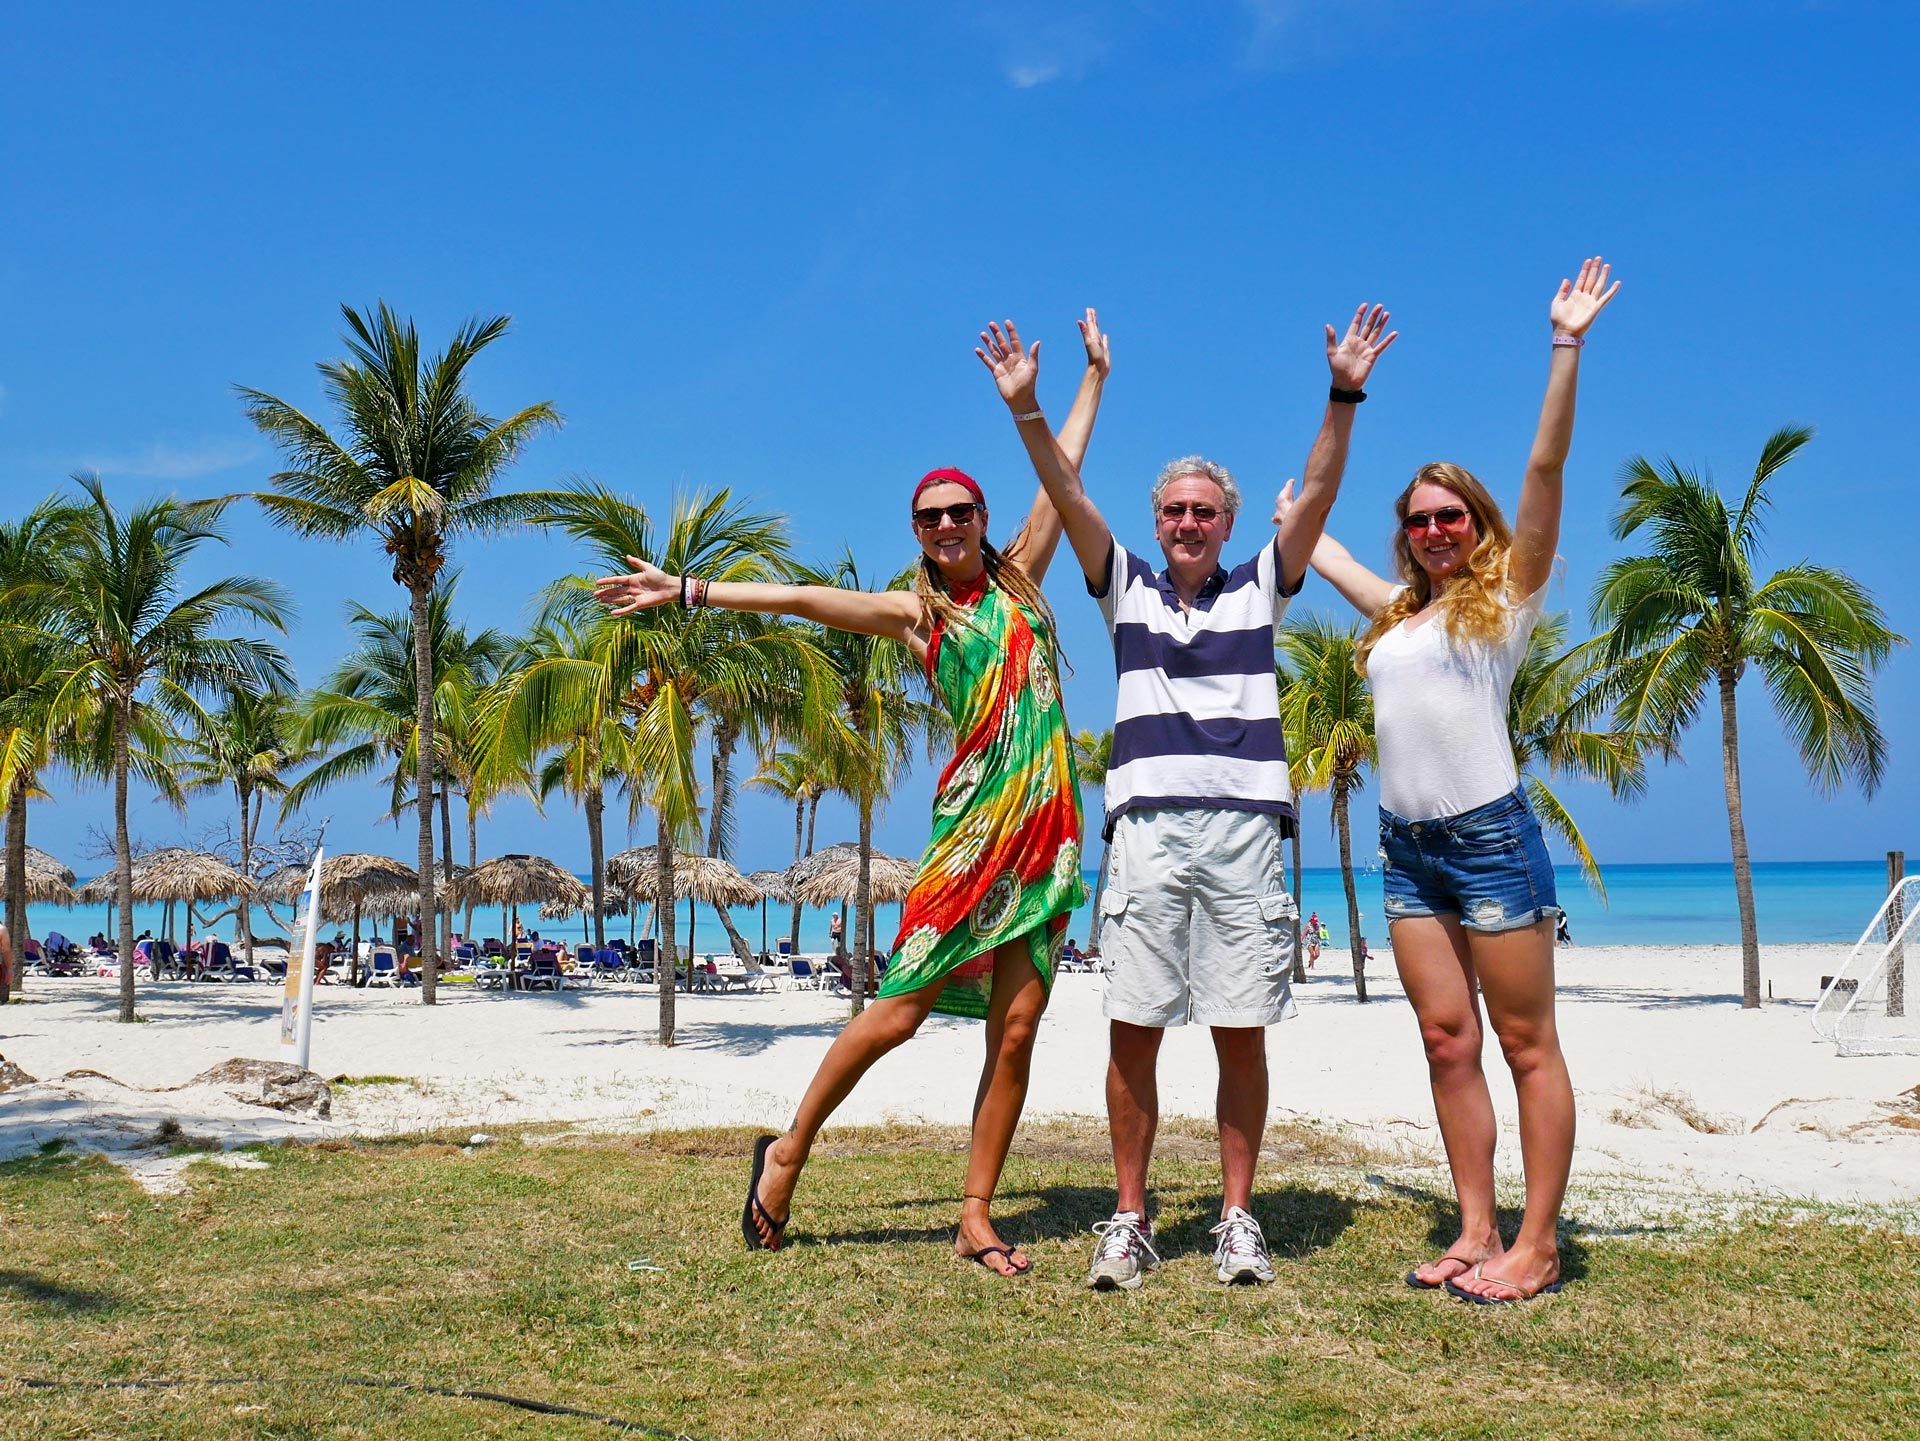 Family in front of beach and palmtrees in Varadero, Cuba